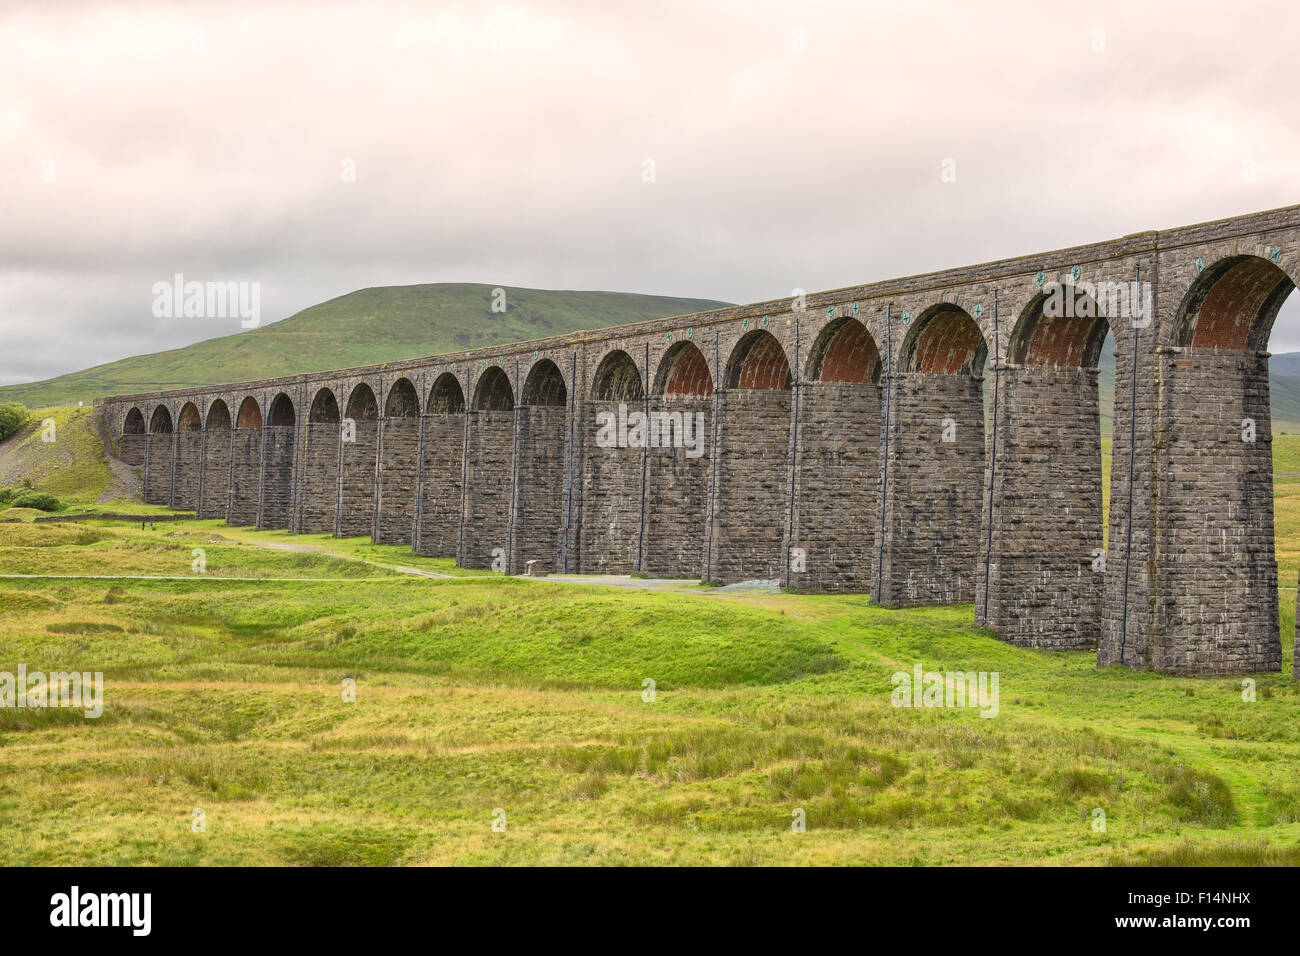 Famous Ribblehead Viaduct in Yorkshire Dales National Park - Stock Image